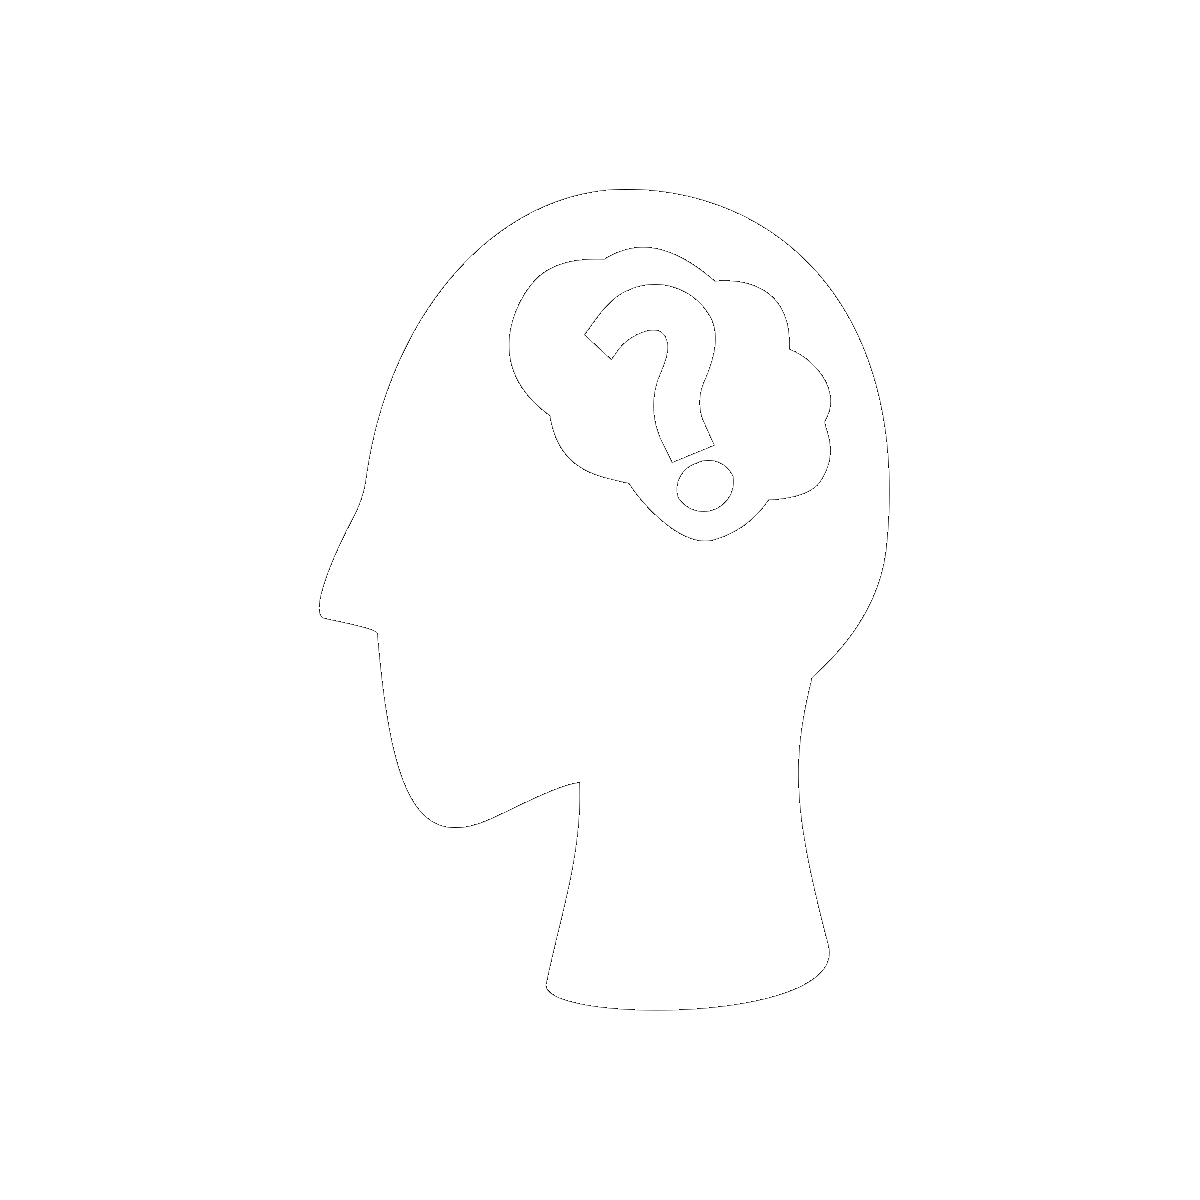 Theme Mystery, Understanding, and the Unknown